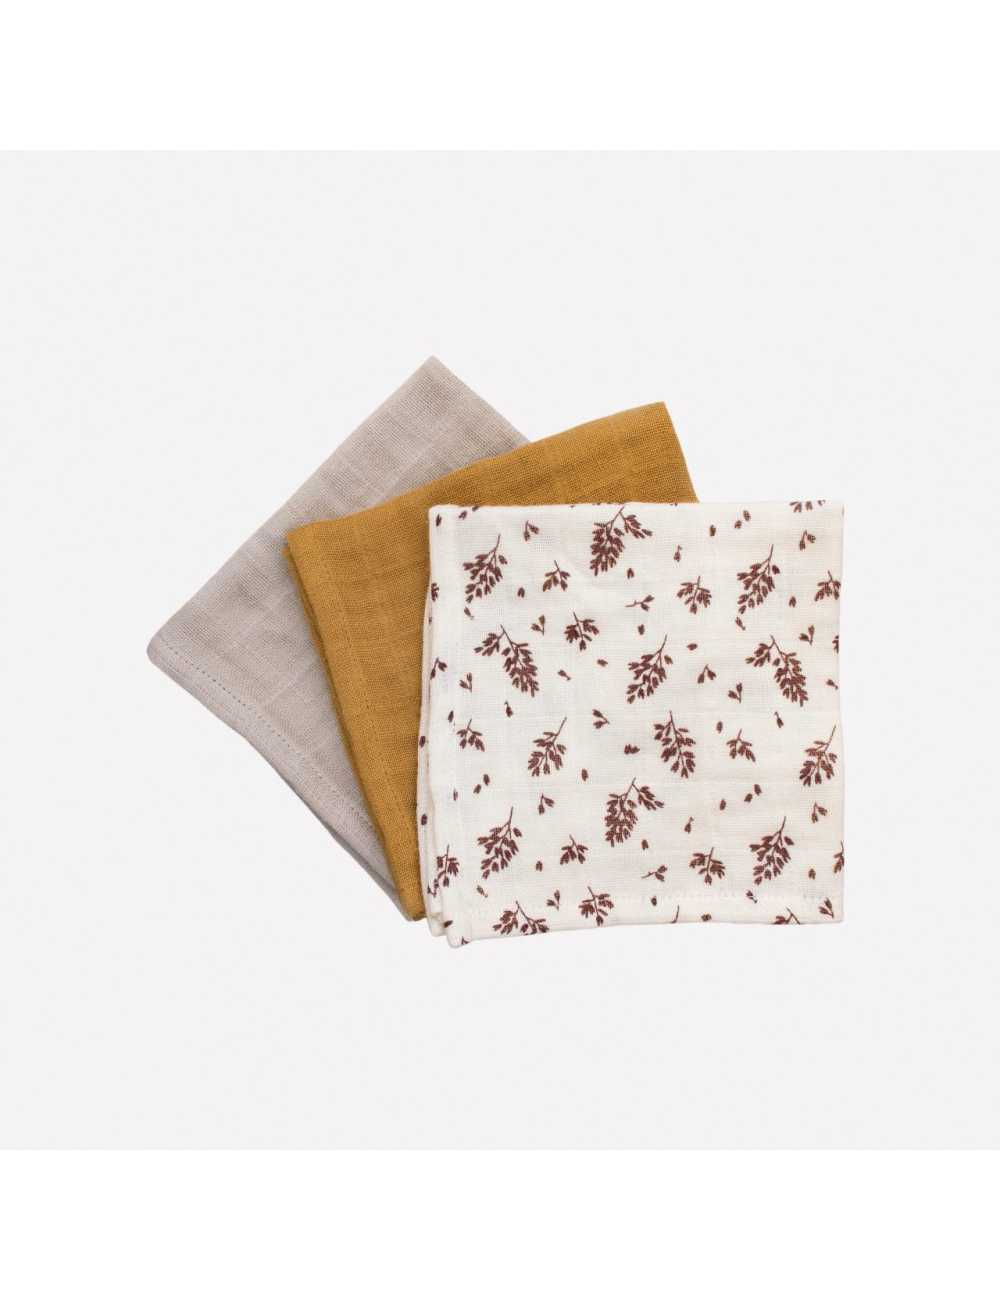 Cotton muslin wipes 3-pack | meadow printtest